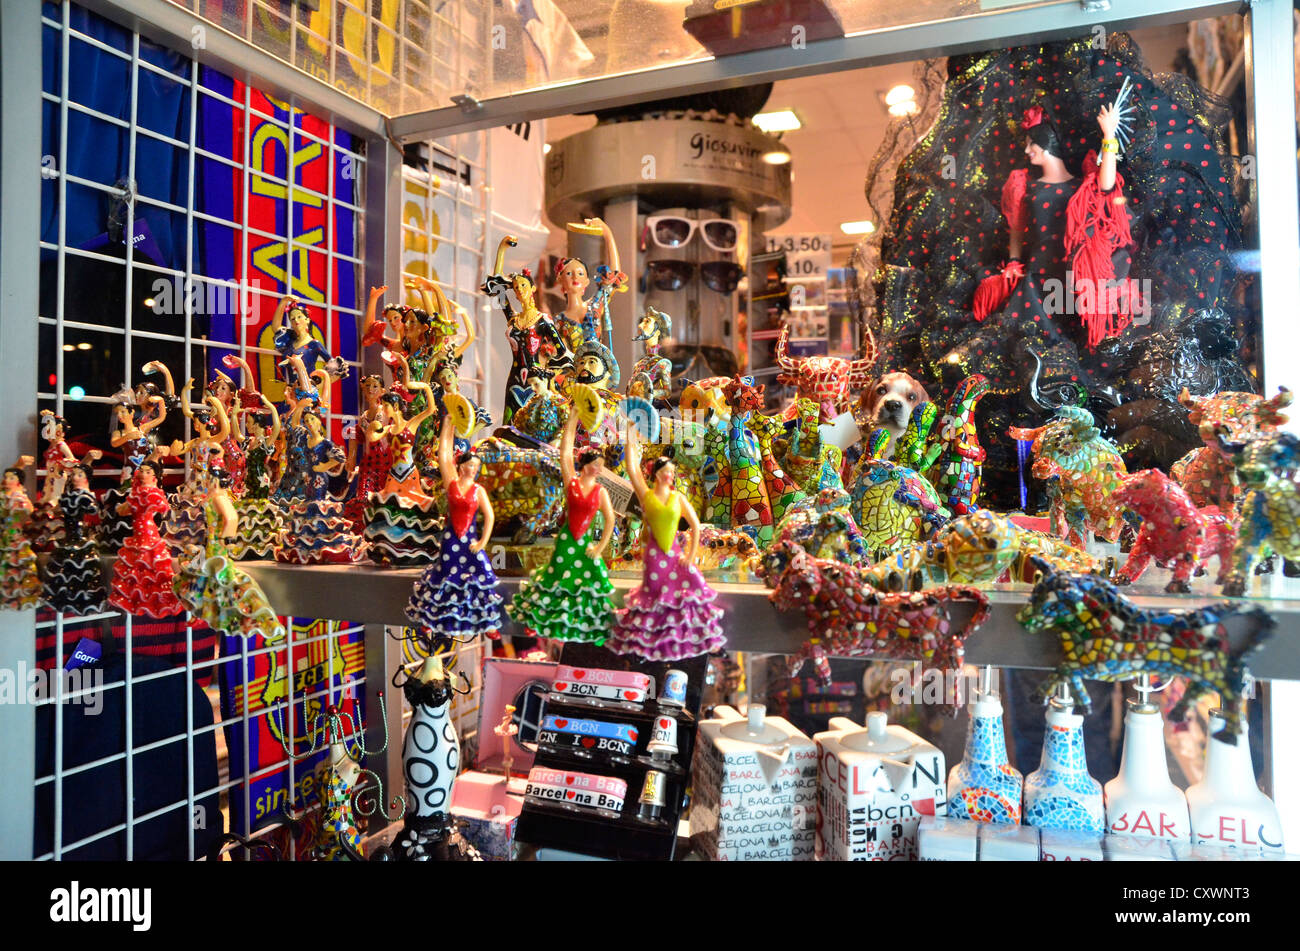 Barcelona's souvenirs made like dragon in Park Guell (Gaudí). - Stock Image